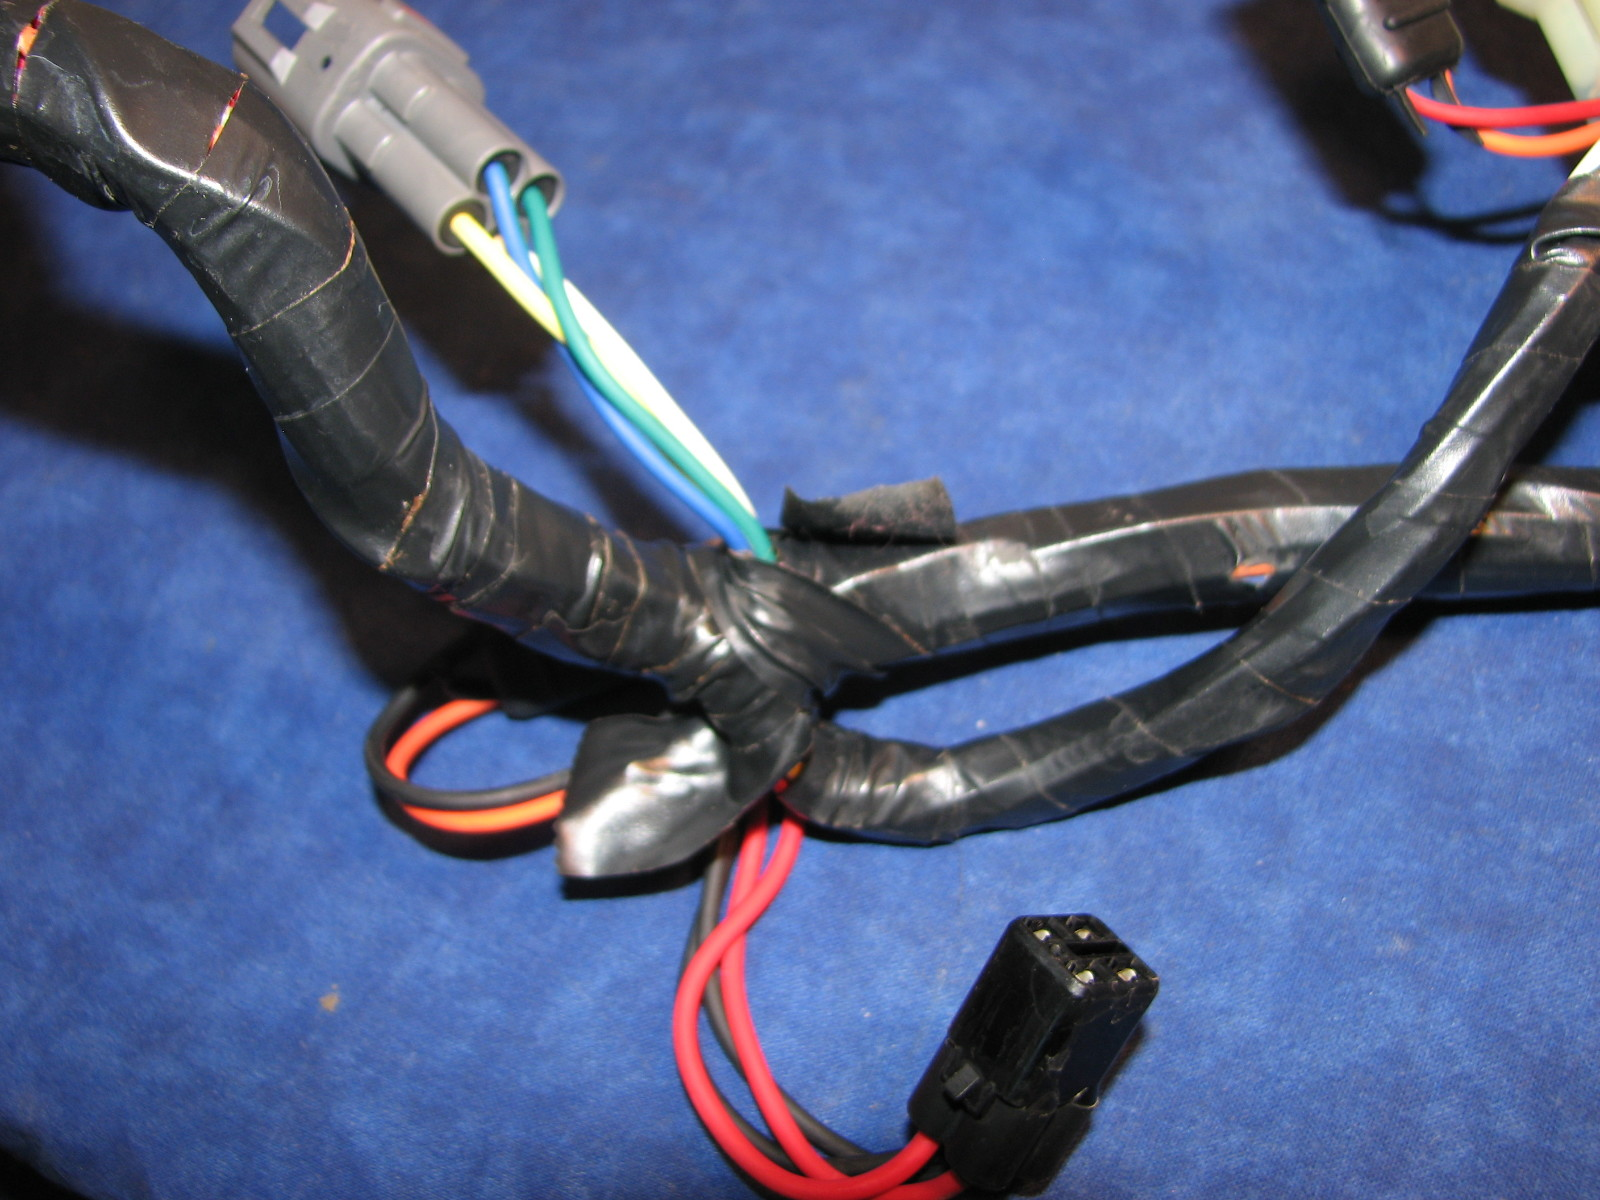 Arctic Cat Wiring Harness Opinions About Diagram 2005 400 4x4 Vp Auto 0486 165 Ebay 2007 700 Efi 454